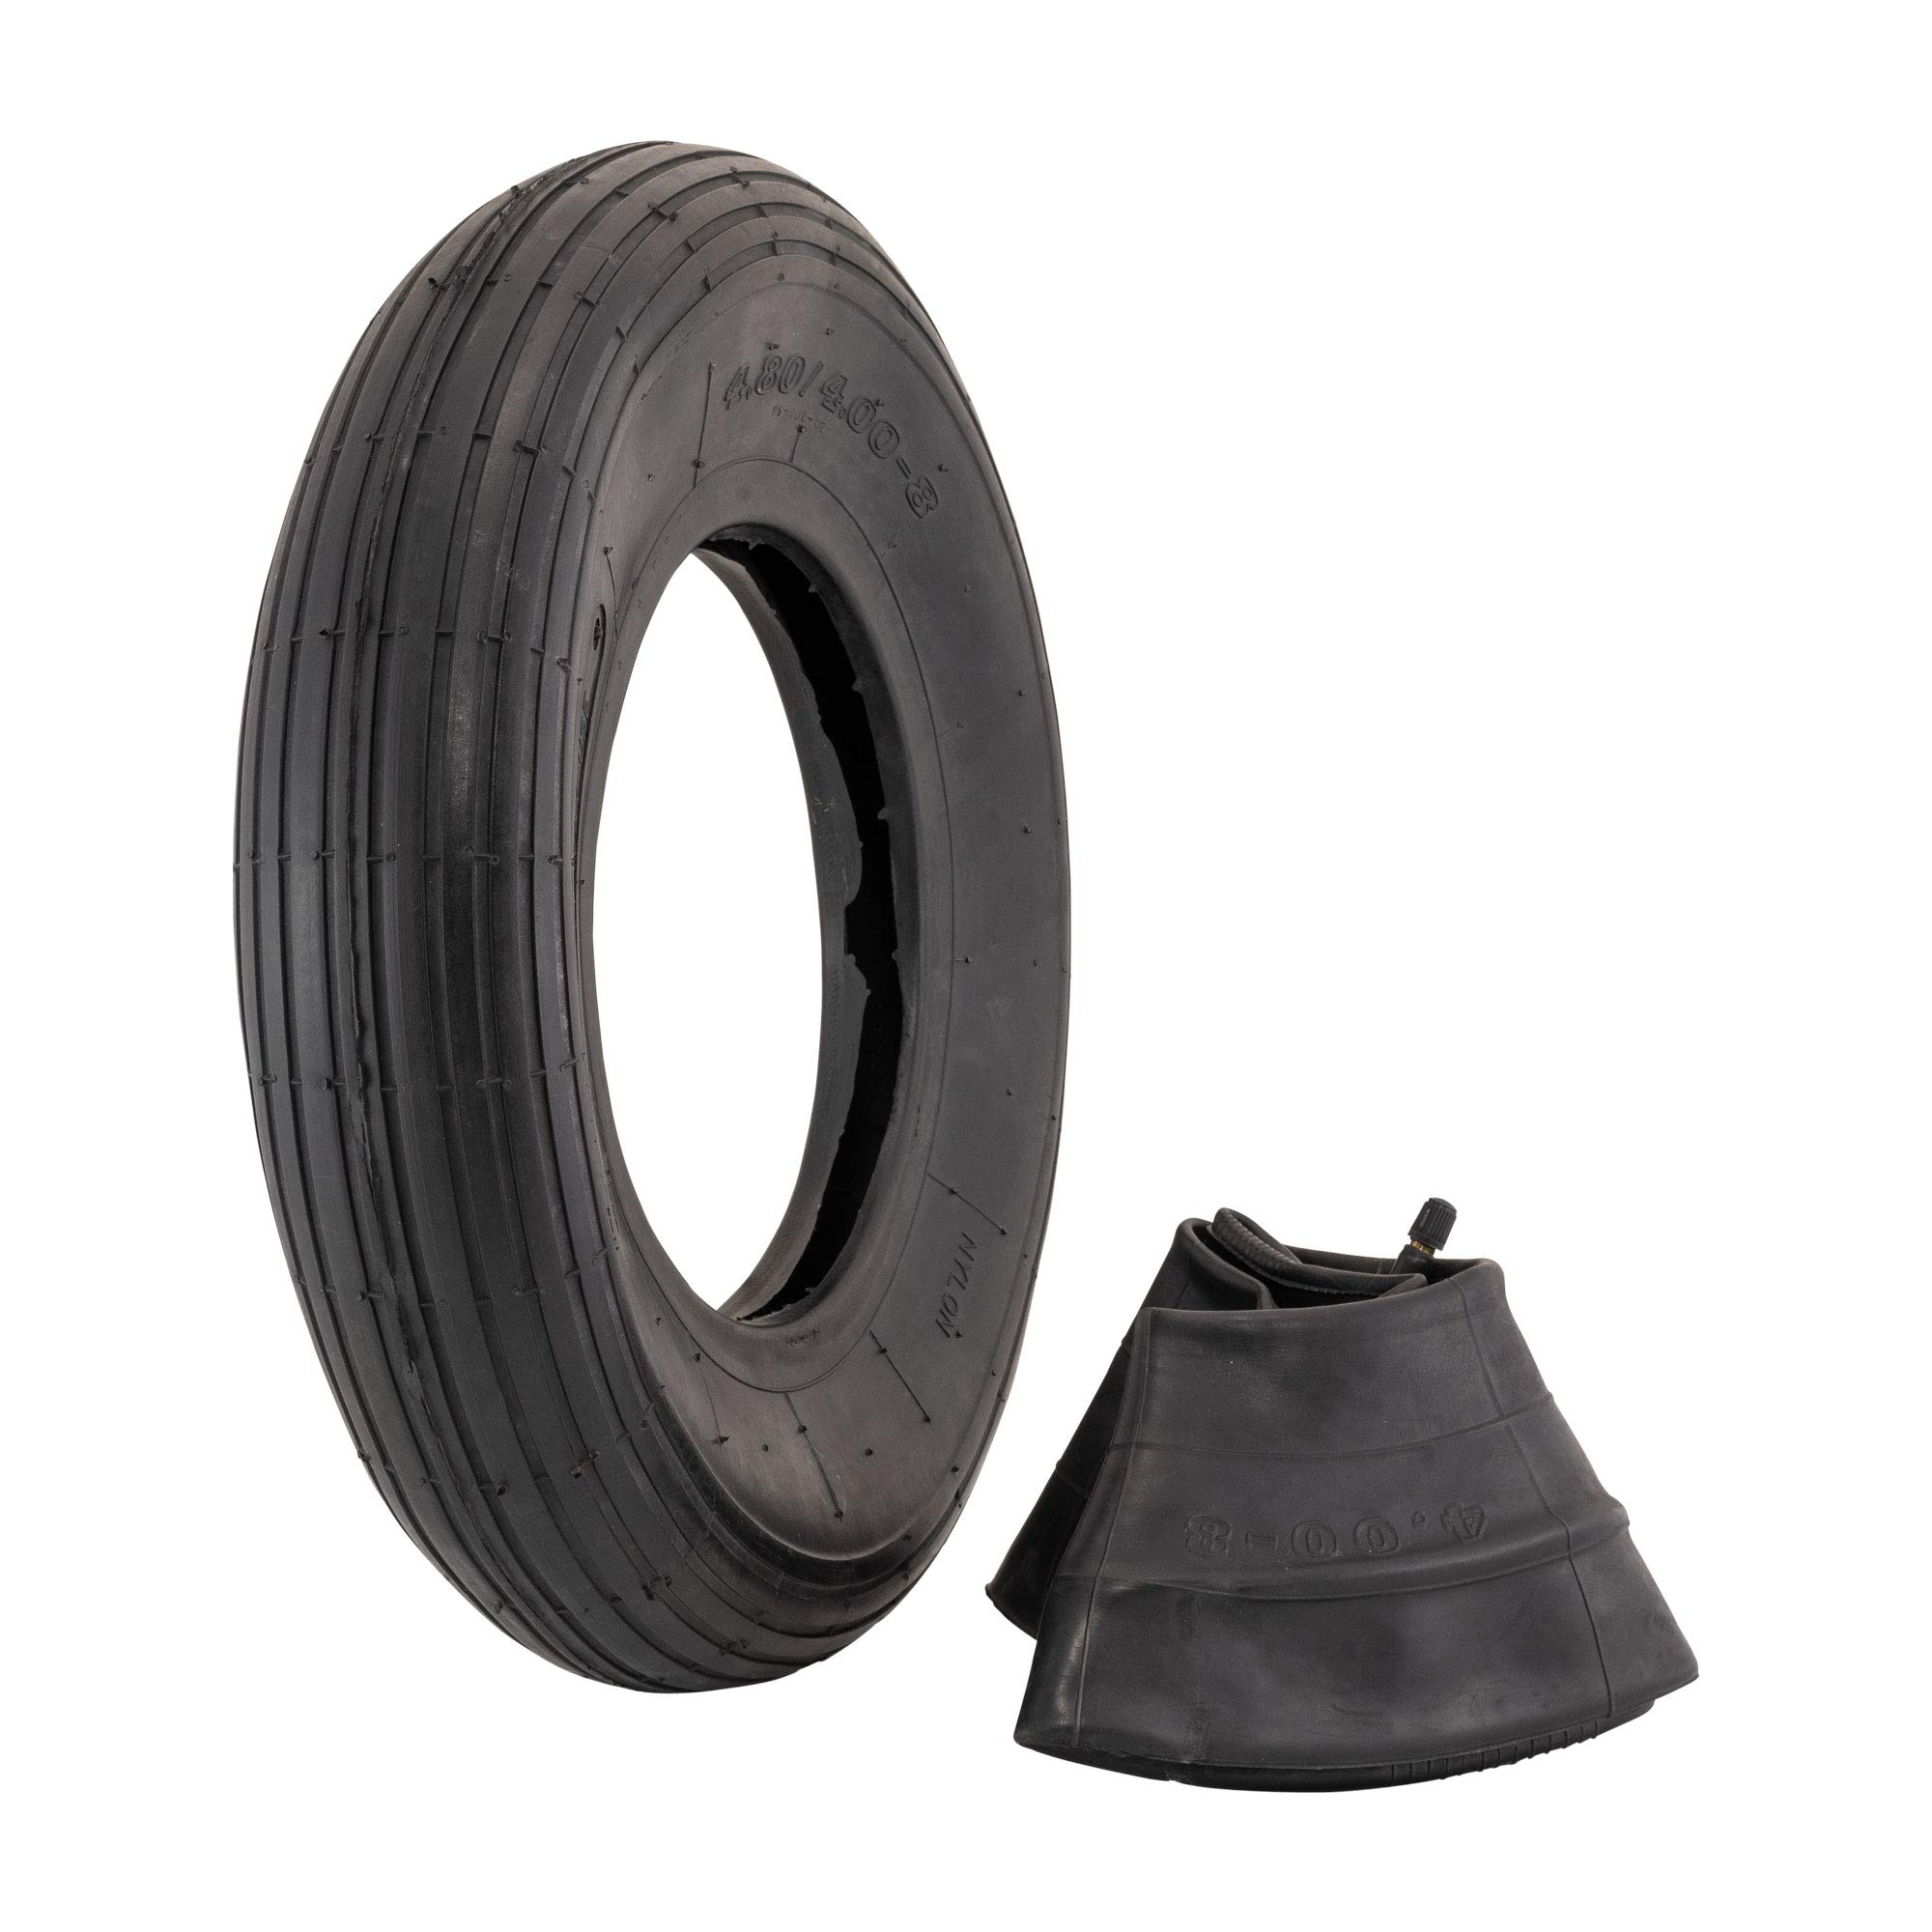 4.80/4.00-8'' Replacement Pneumatic Wheel Tire and Tube by Marathon Industries